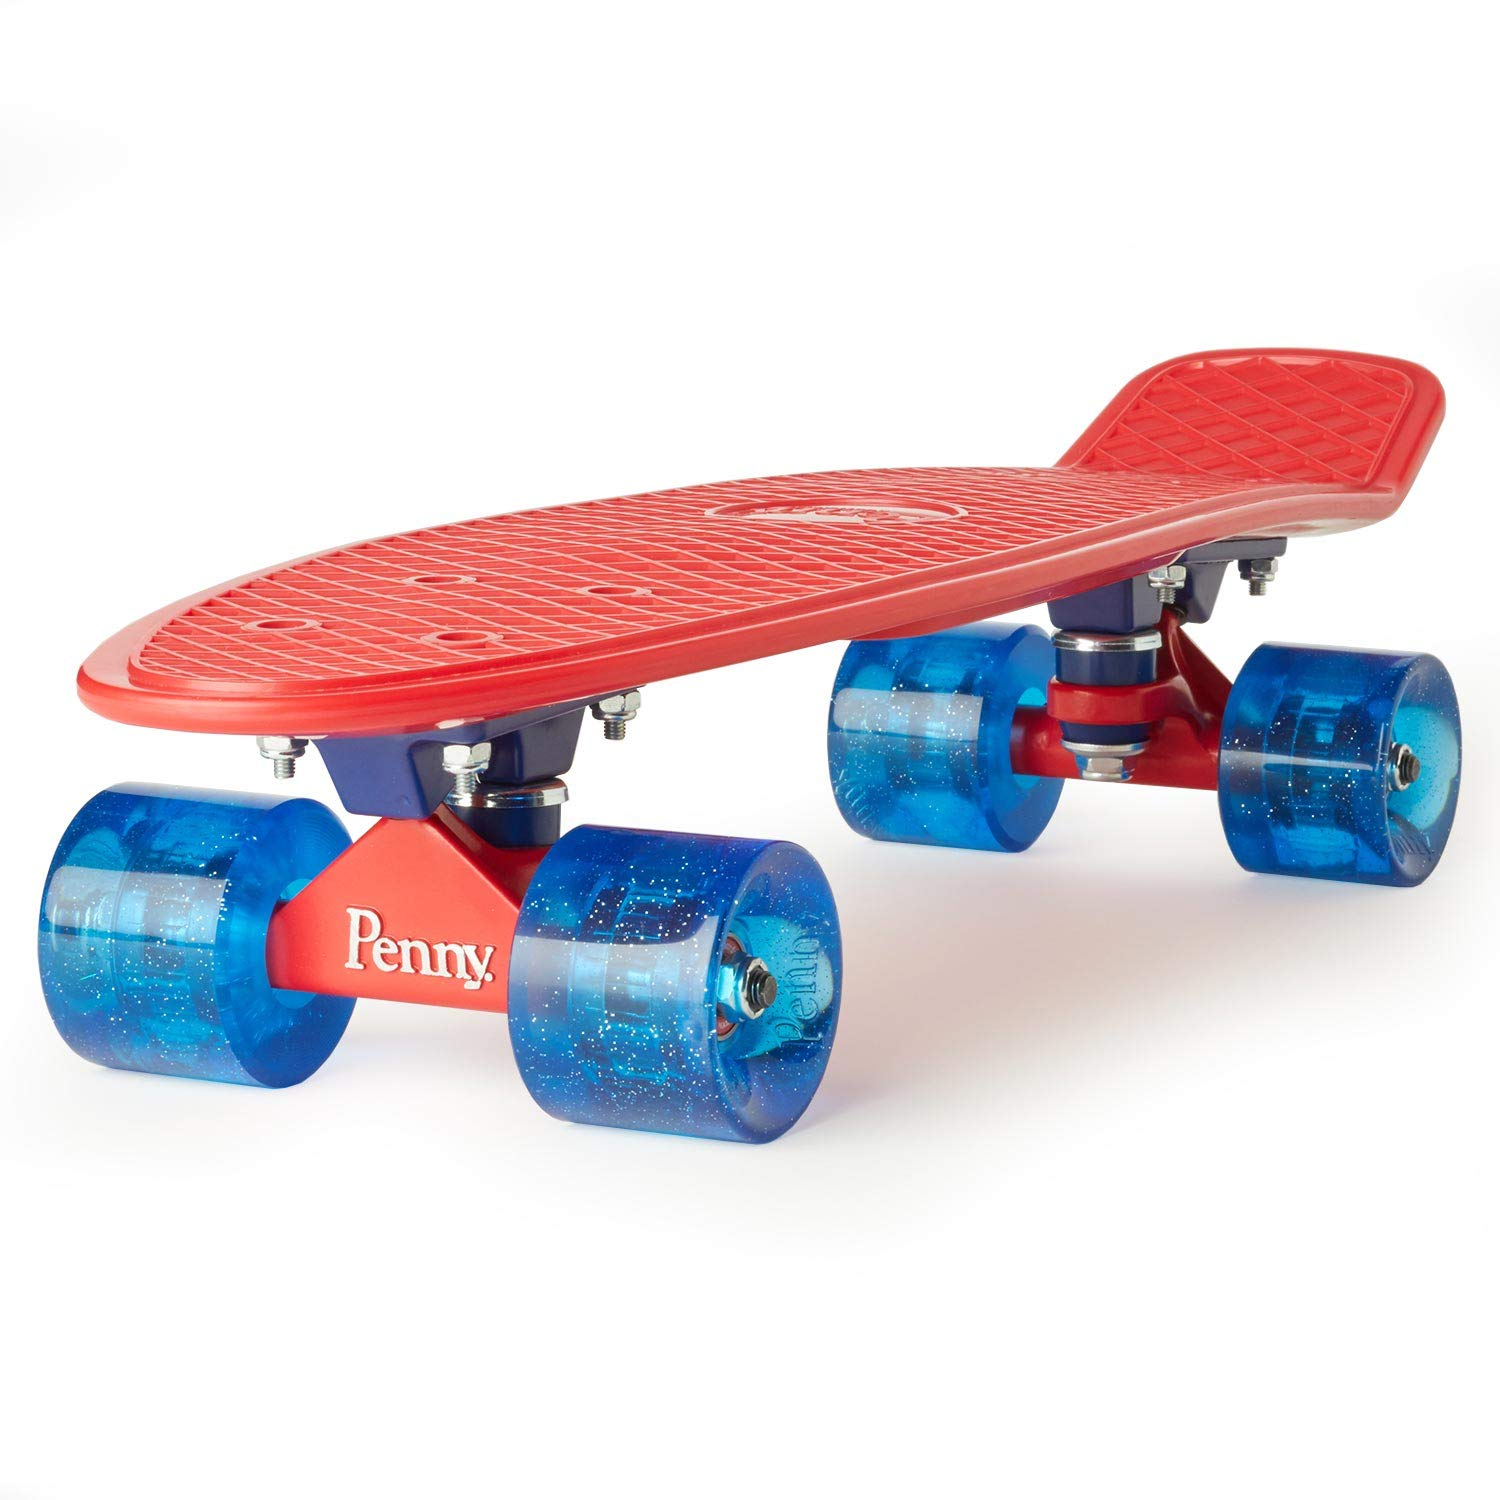 Penny Australia Complete Skateboard (Red Comet, 22'') by Penny Australia (Image #2)